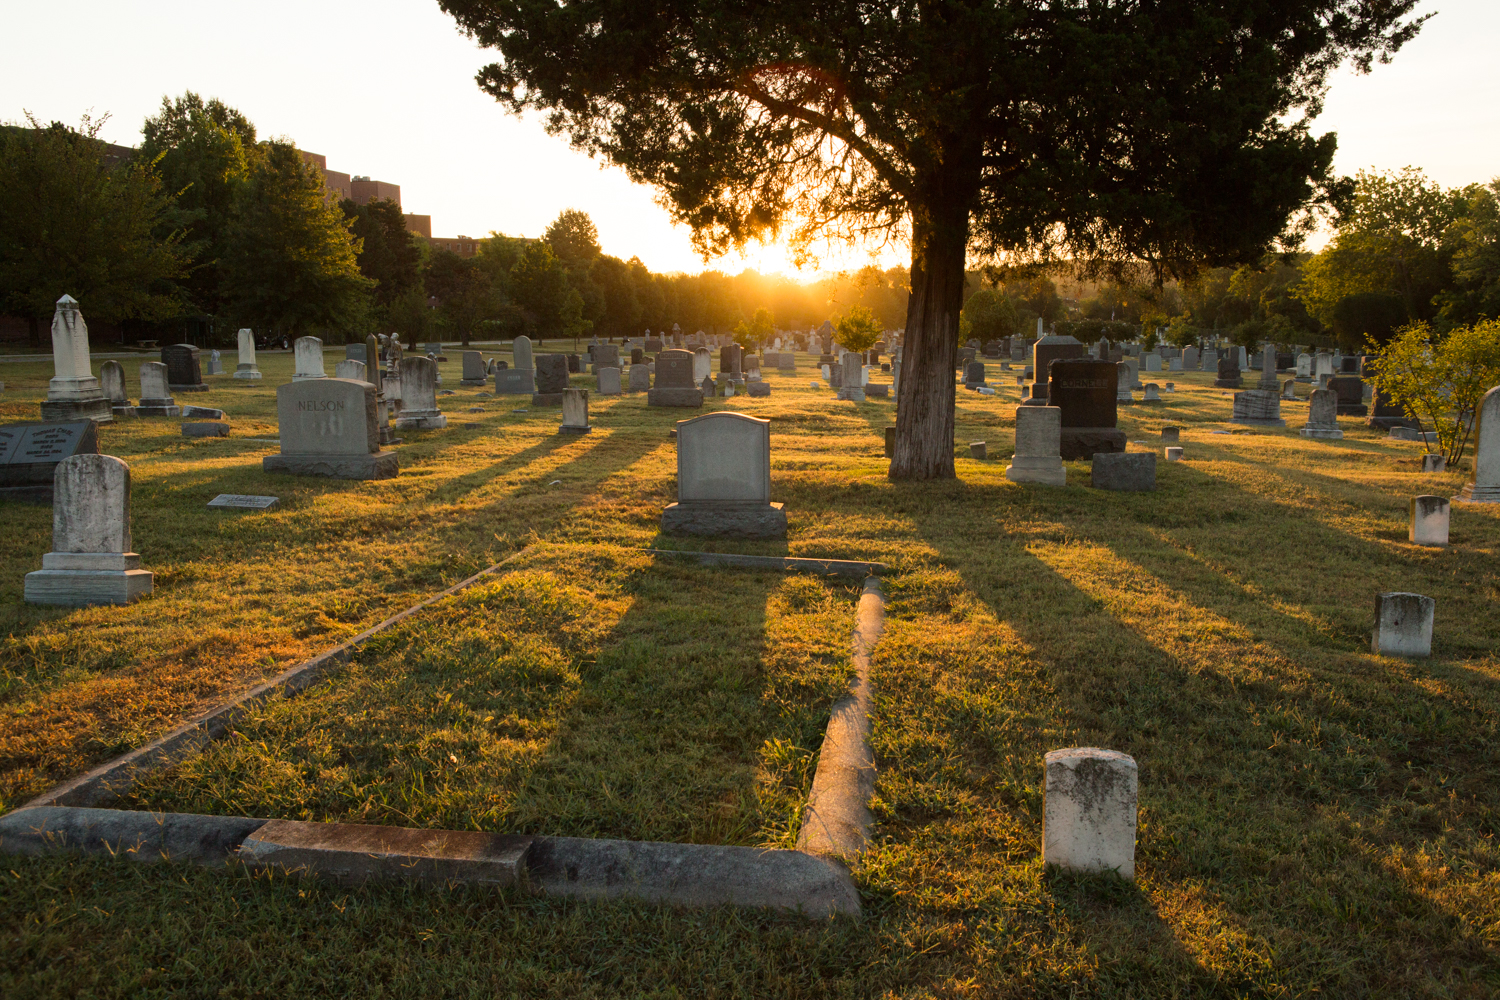 The sun rises over the eastern-most section of the Congressional Cemetery in Washington, D.C.